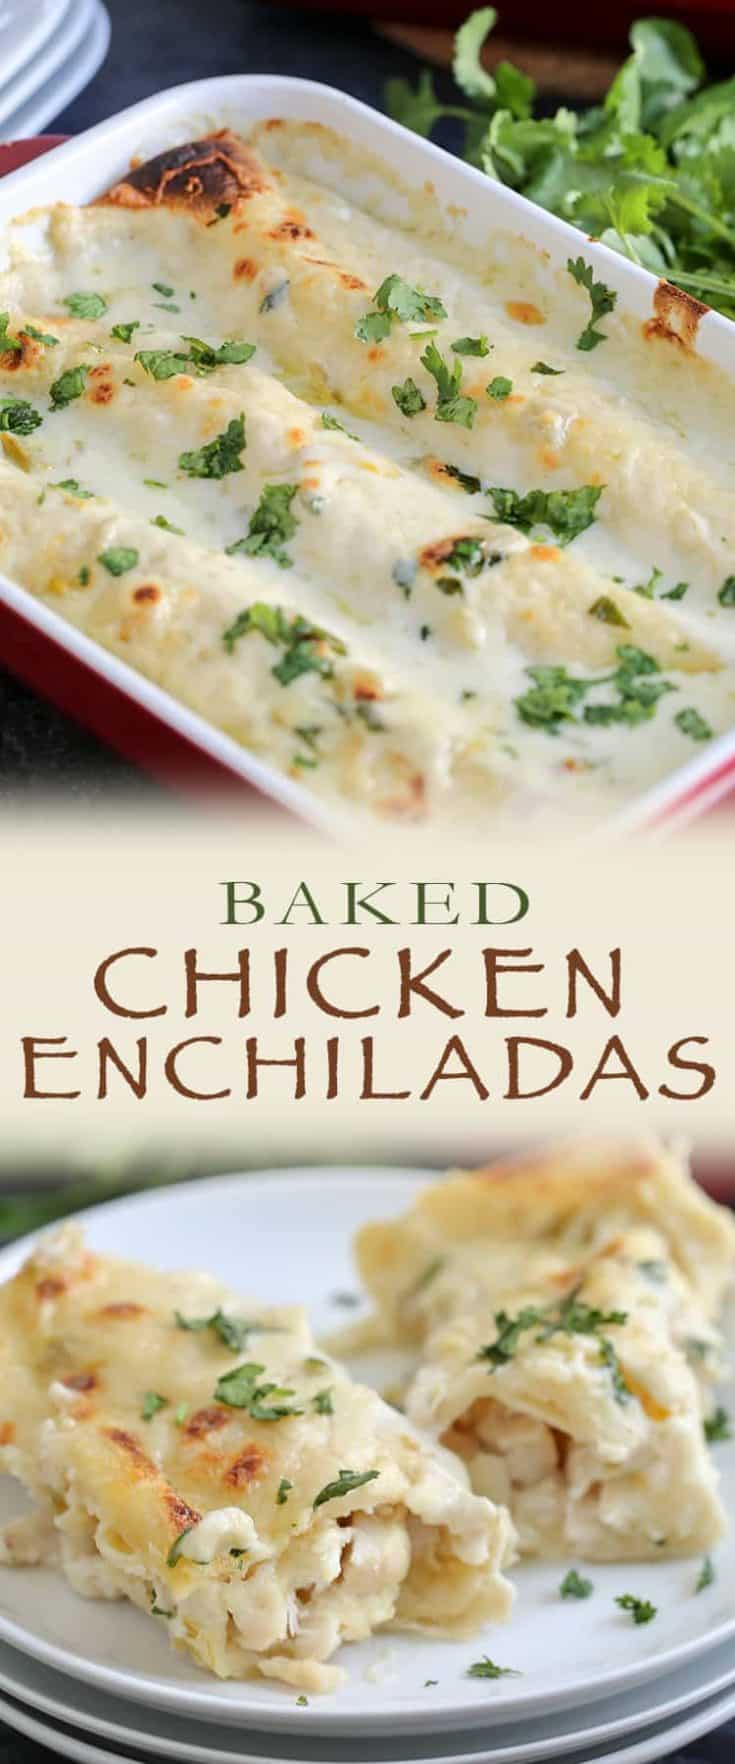 This is the BEST chicken enchilada recipe and one the whole family will love! Tips on how to shred chicken, a quick 10 minute creamy enchilada sauce starring sour cream and broth, and easy assembly thanks to using tortillas. This baked recipe will become a favourite! #chickenenchilada #chickenrecipe #enchilada